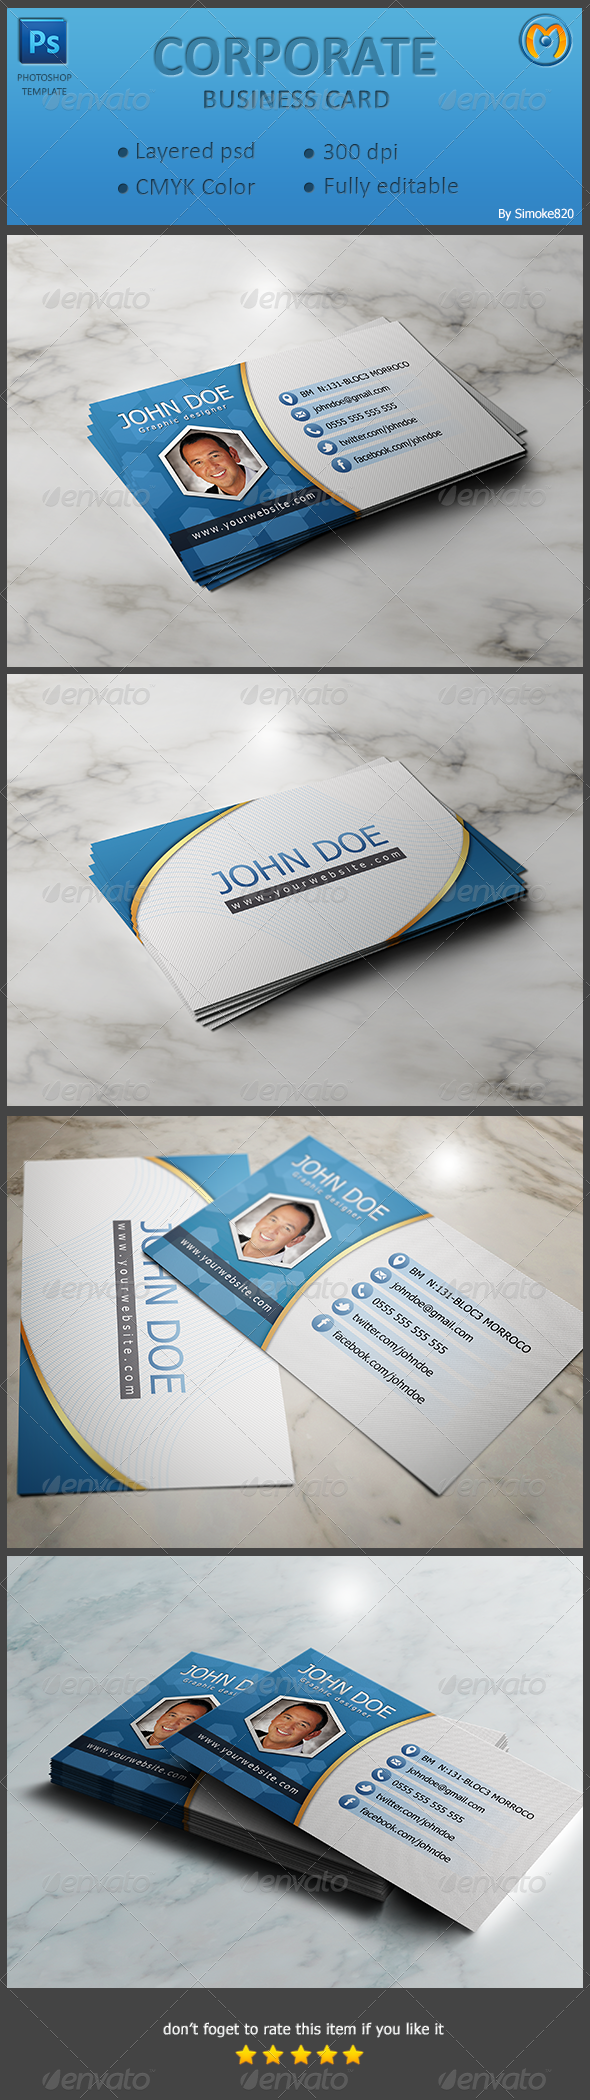 Corporate Business Card V.4 - Corporate Business Cards